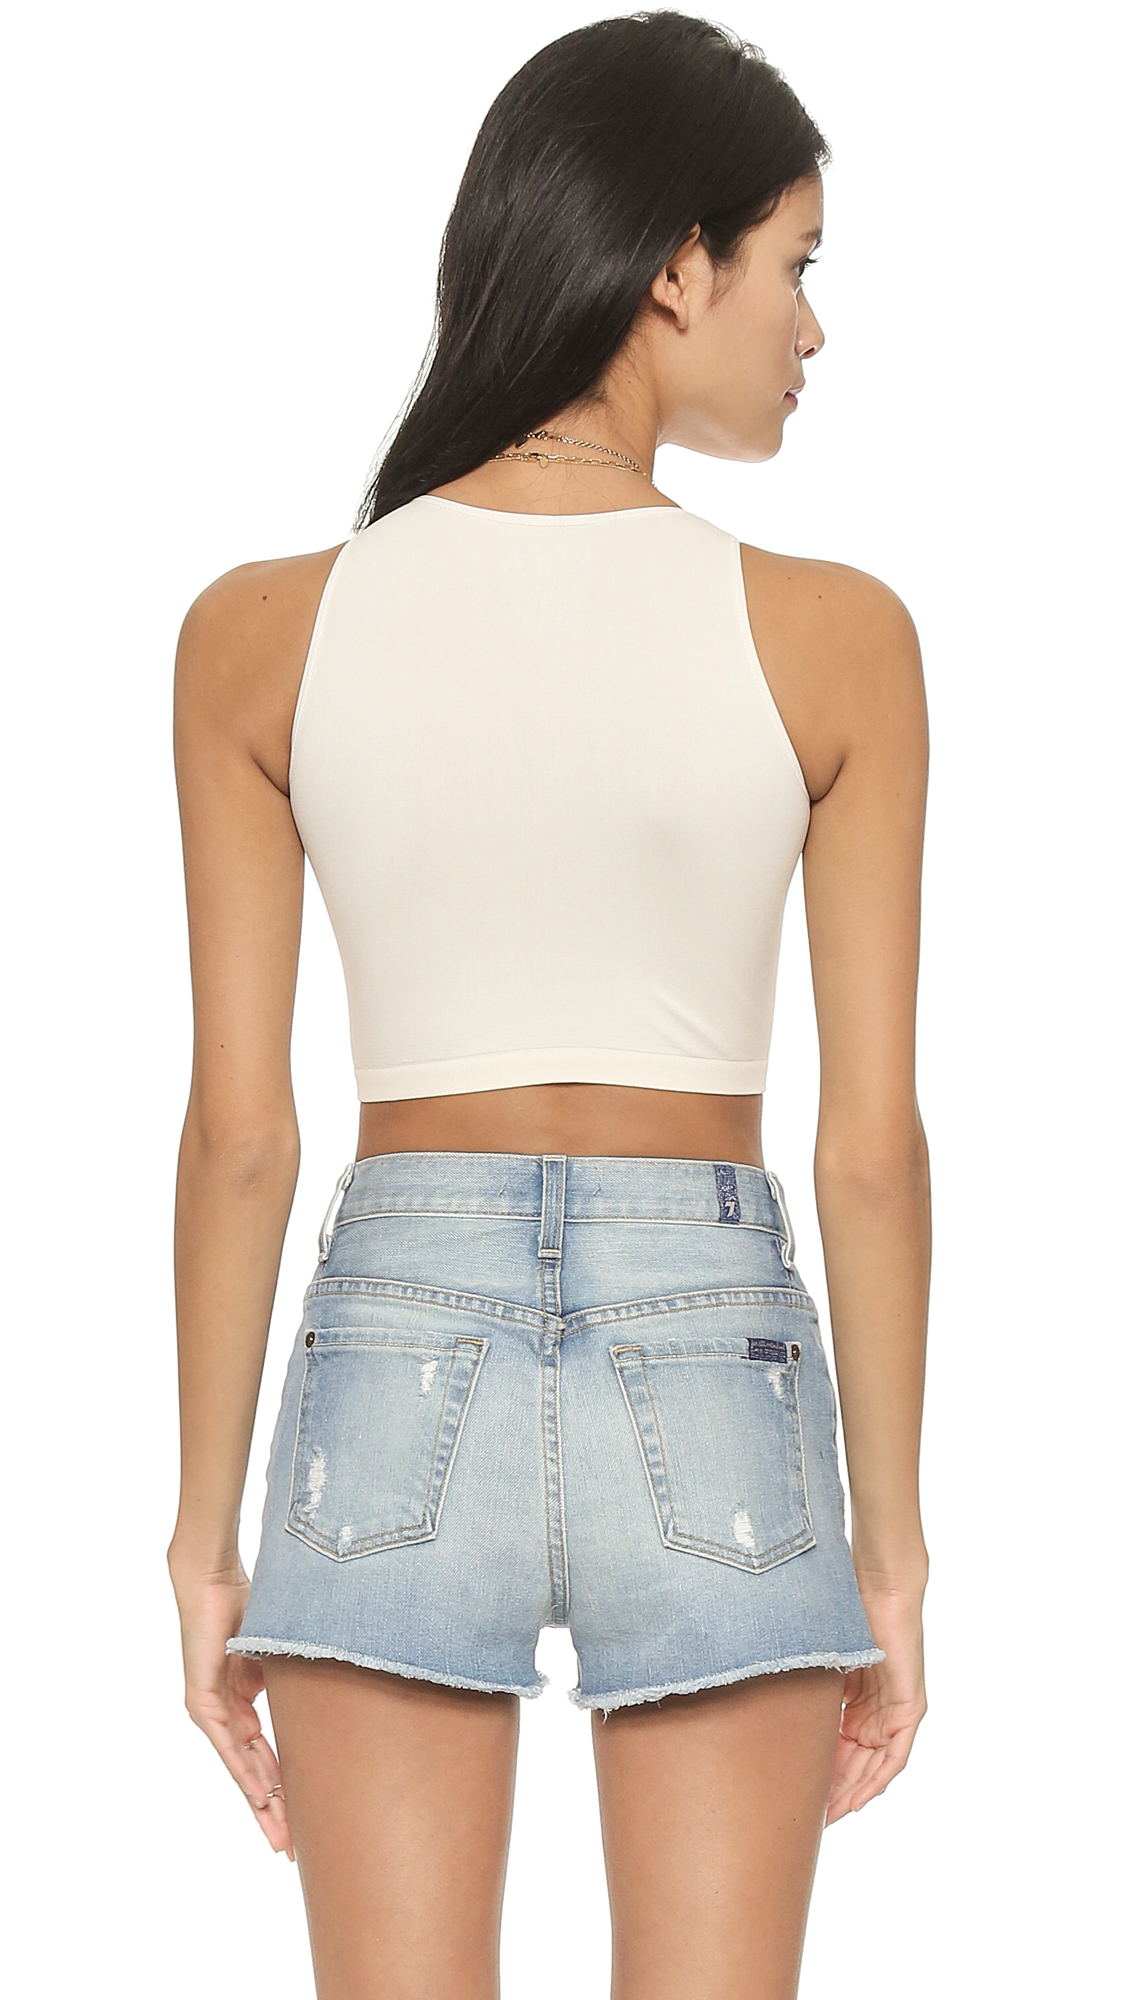 488ff1b00d Lyst - Free People High Neck Crop Seamless Cami in White